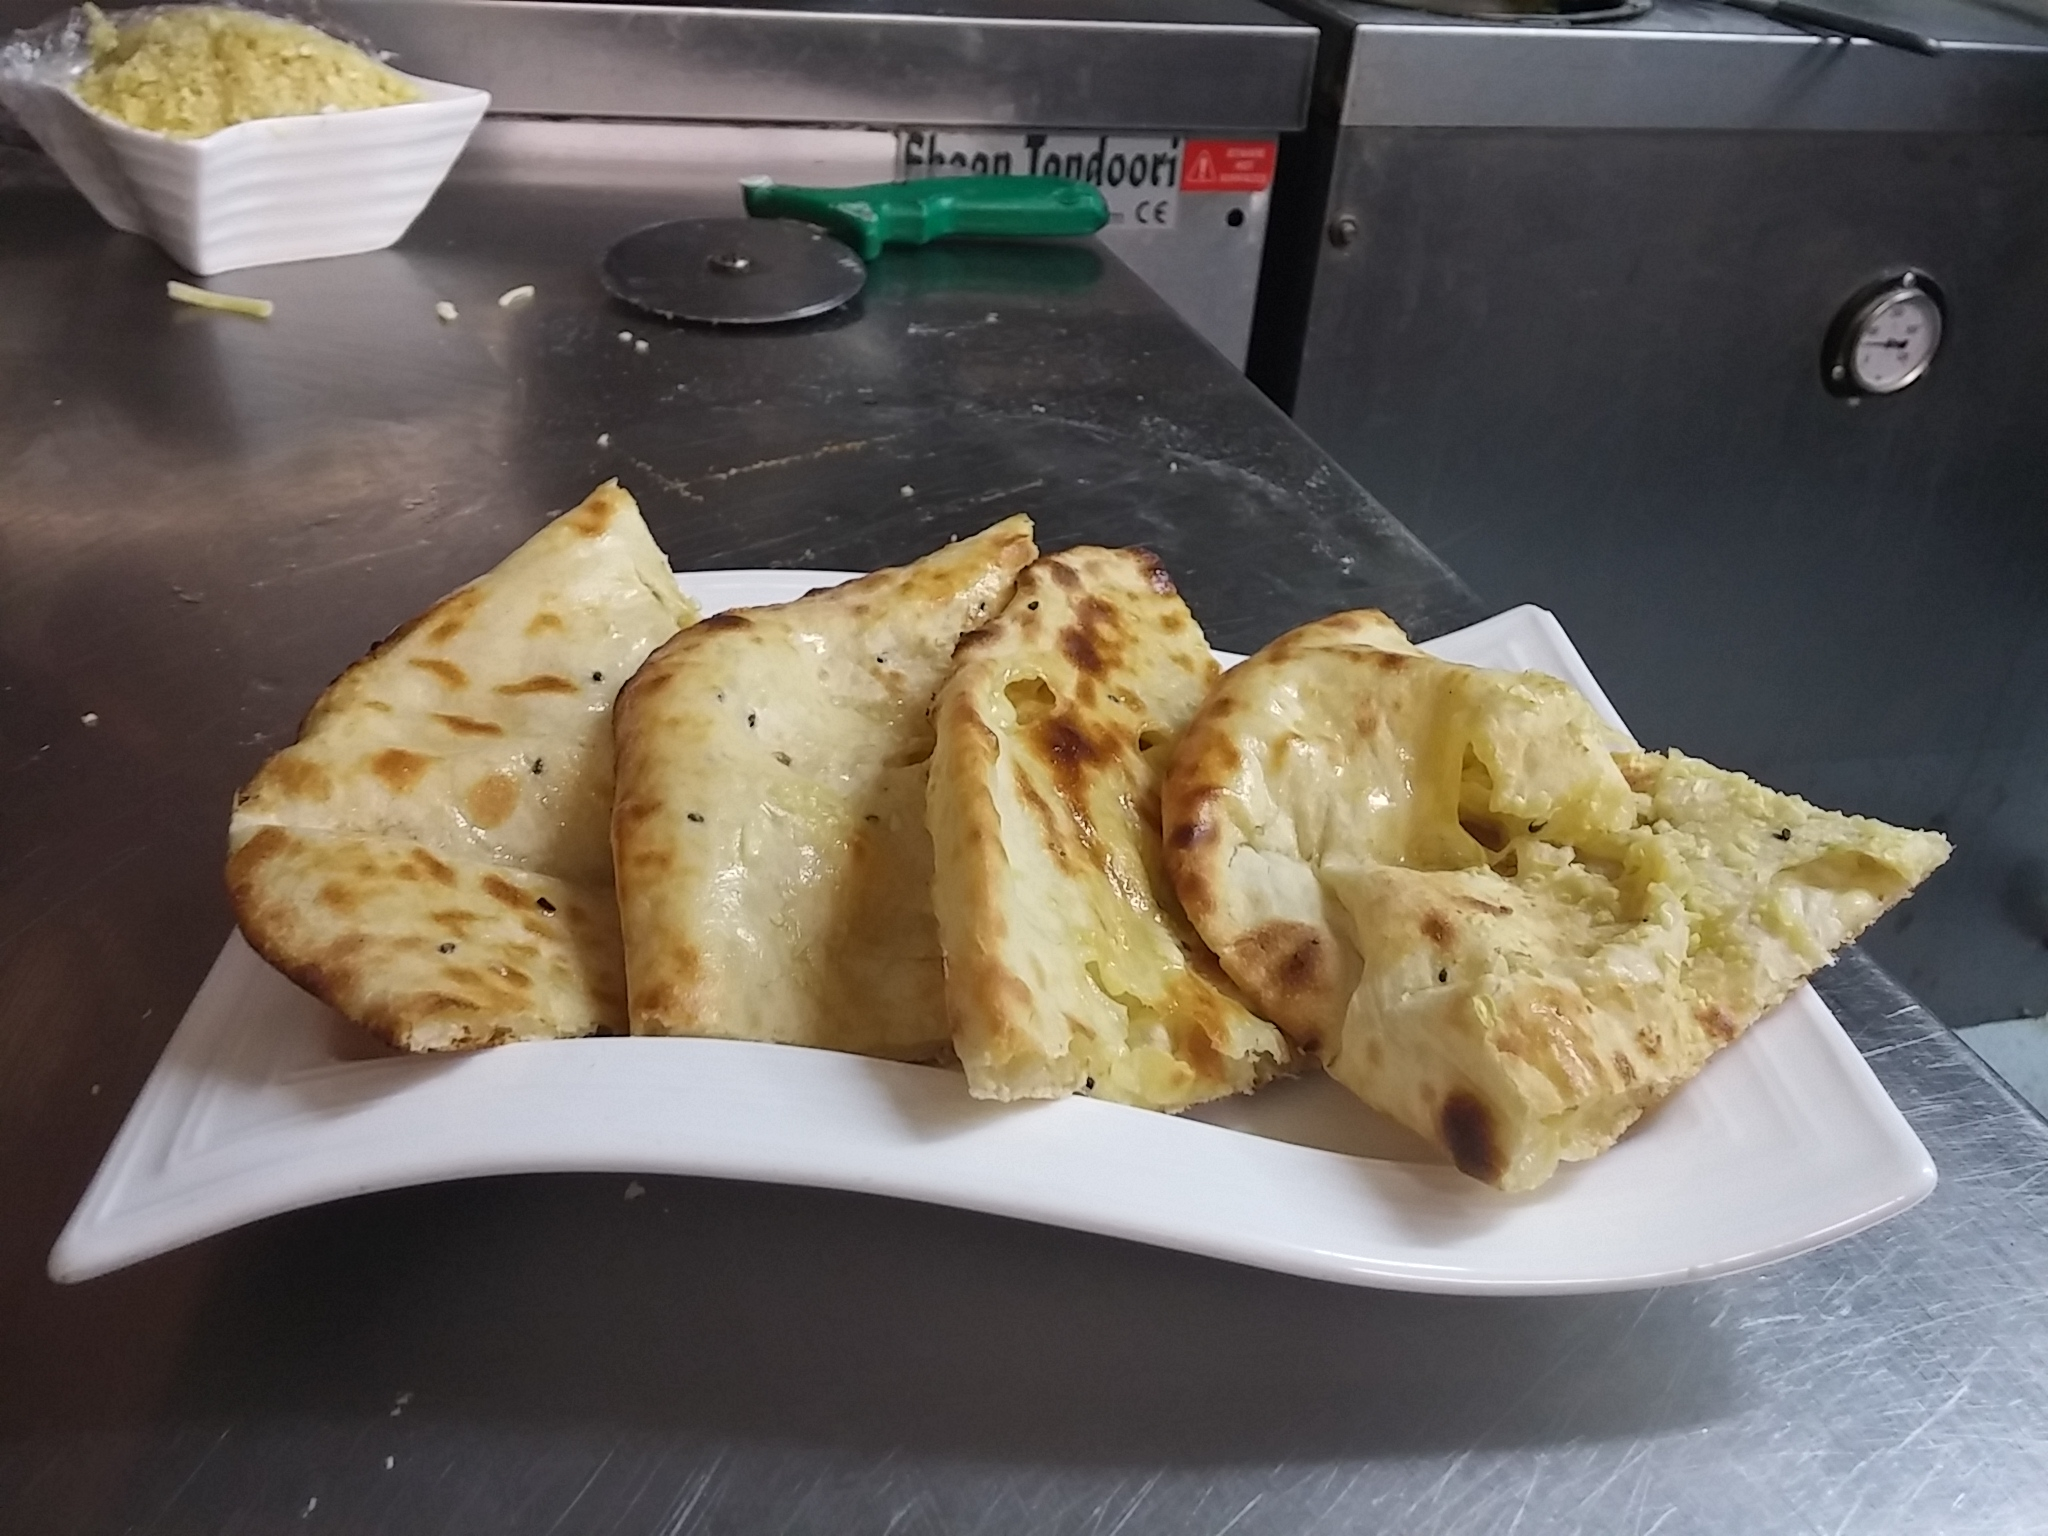 Hot from the tandoor, cheese and garlic naan cooked by the thoroughly fabulous Mr Singh himself